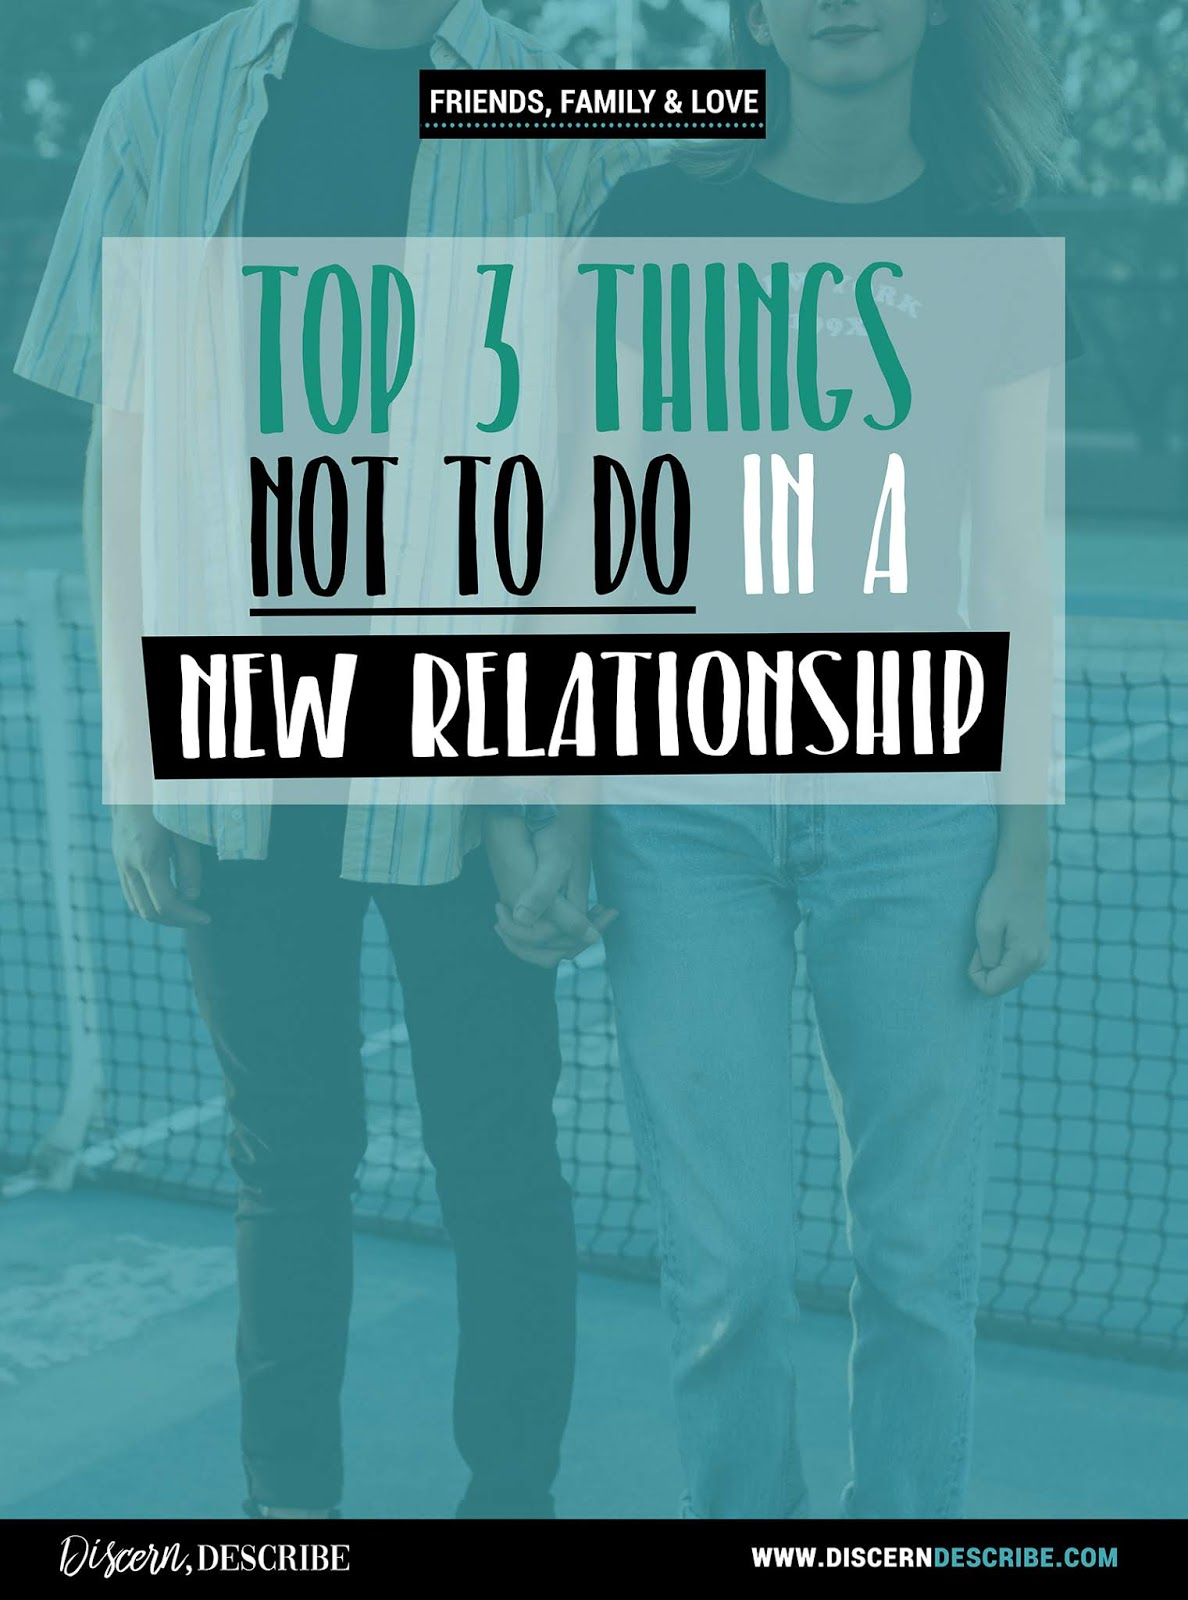 top 3 things not to do in a new relationship